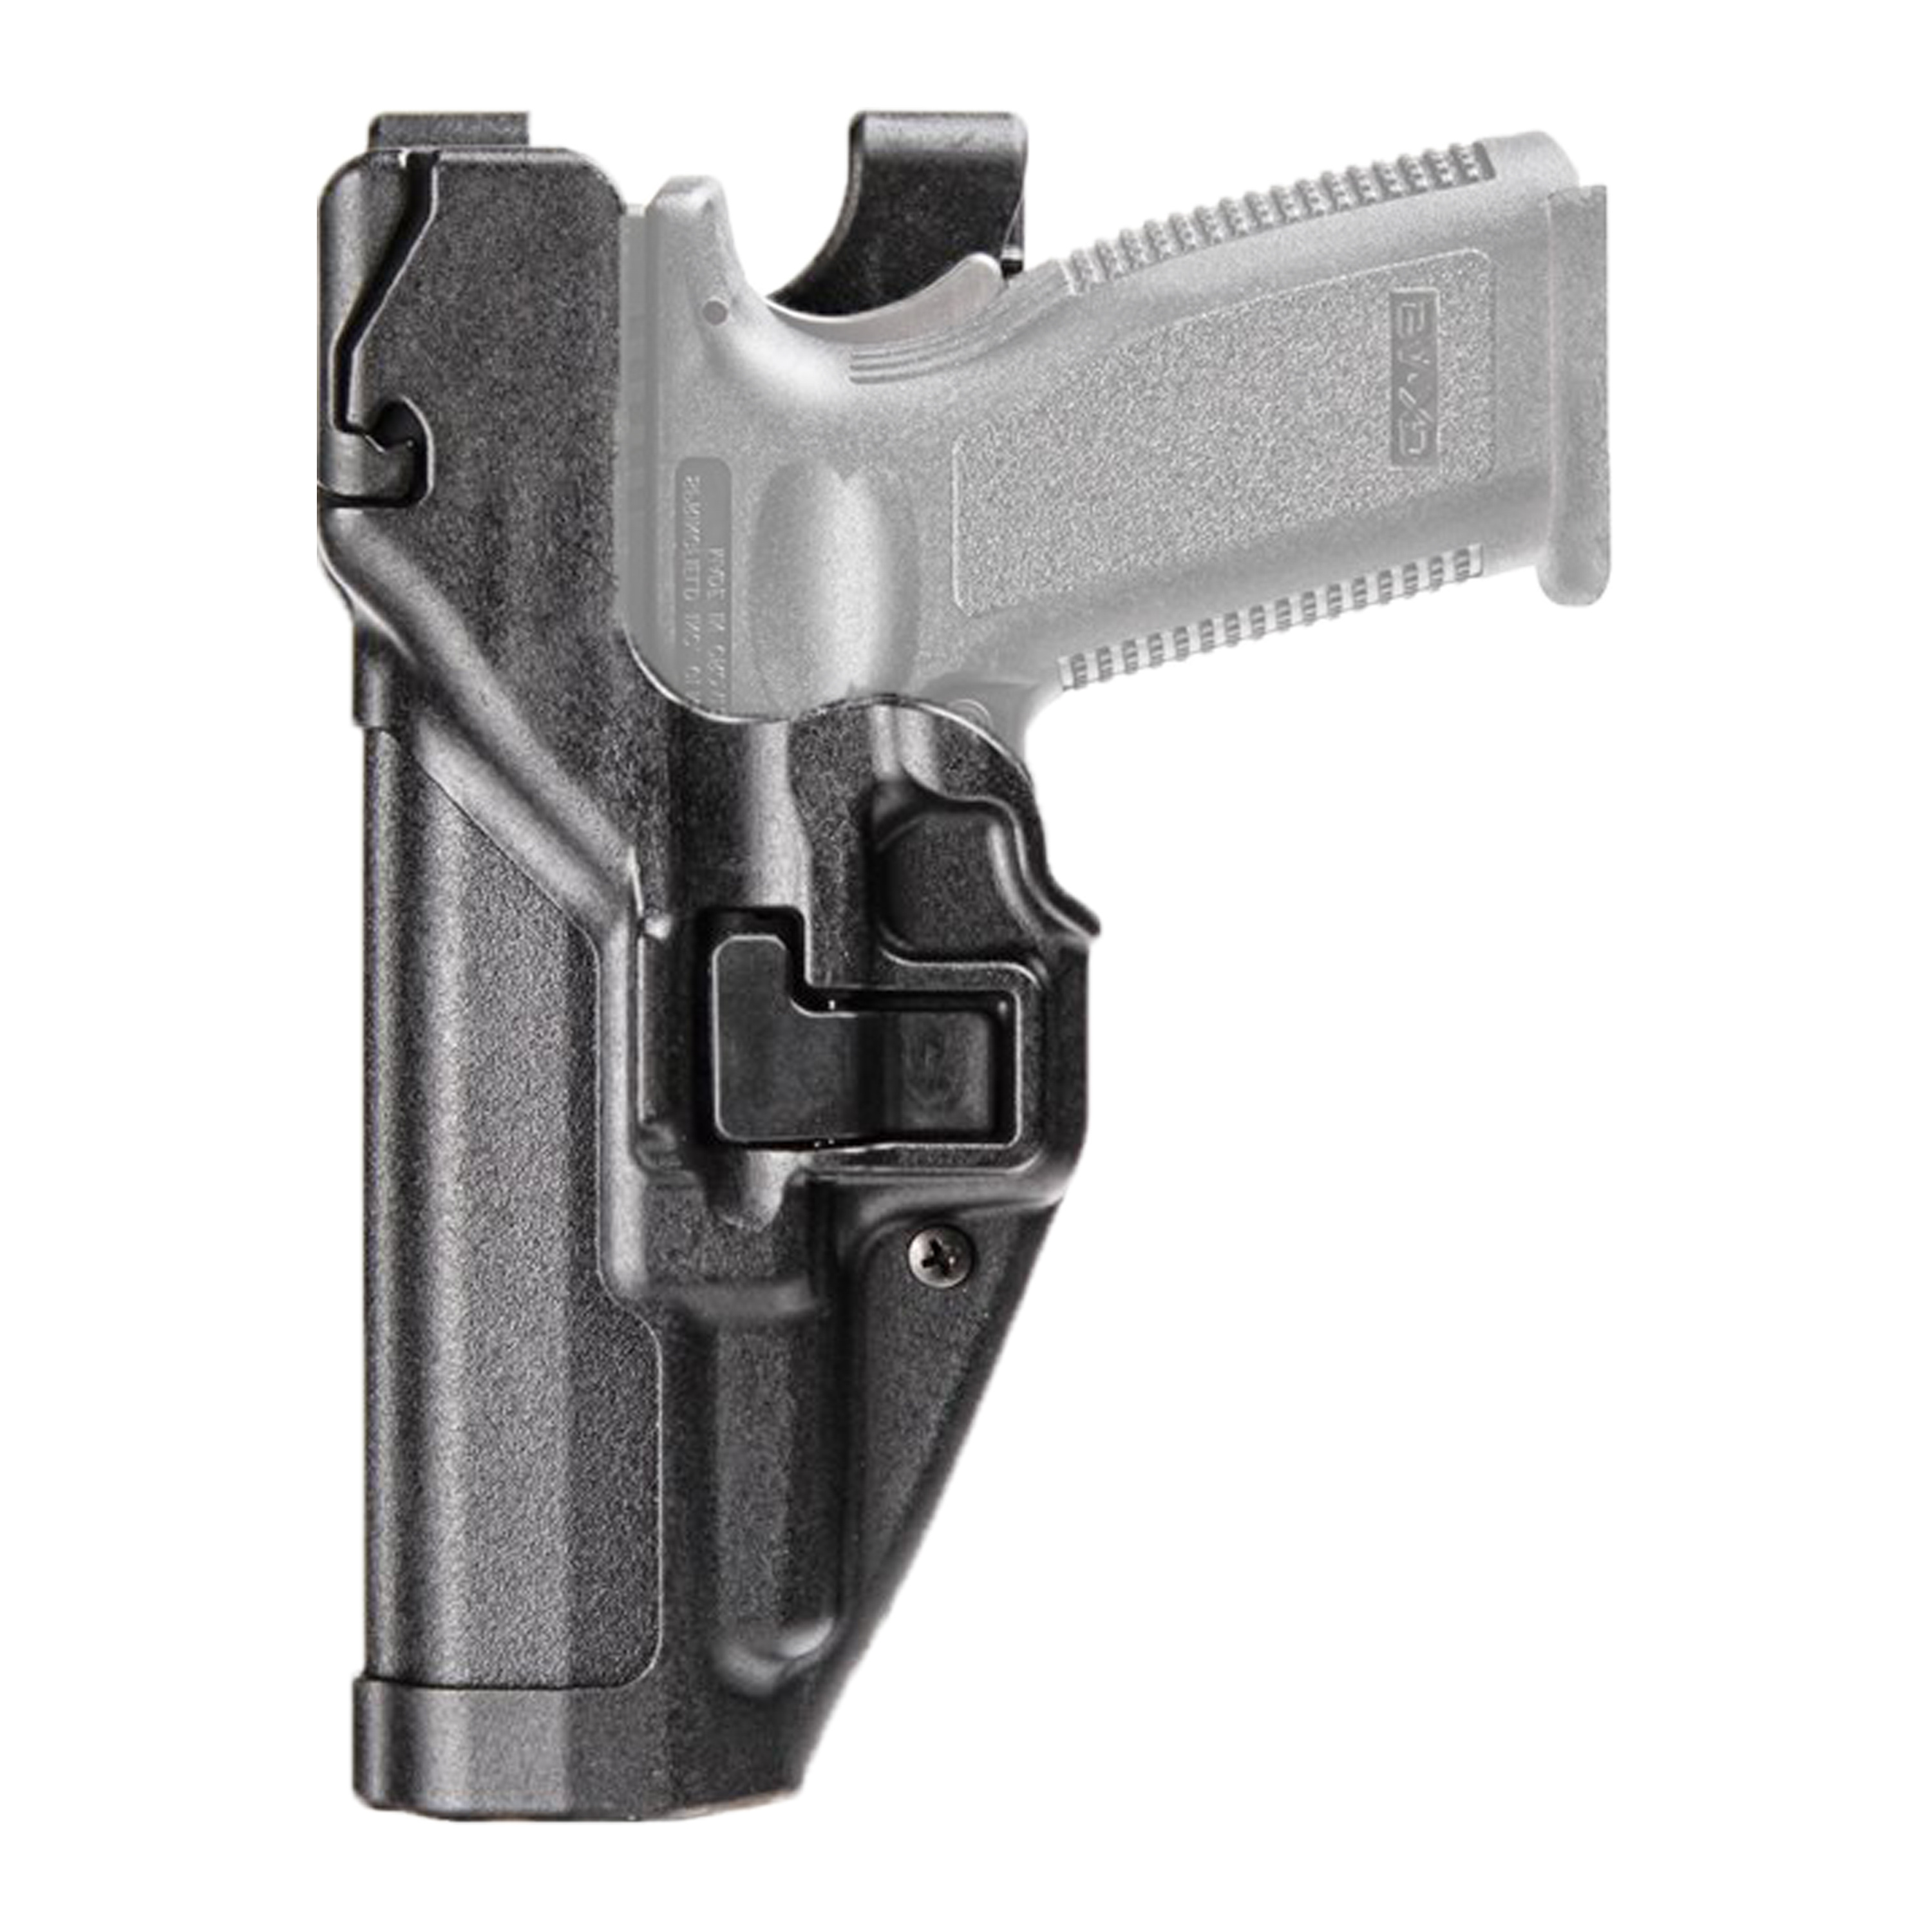 Blackhawk Holster SERPA Level 3 Duty Glock 17/19/22/23/31 gauche